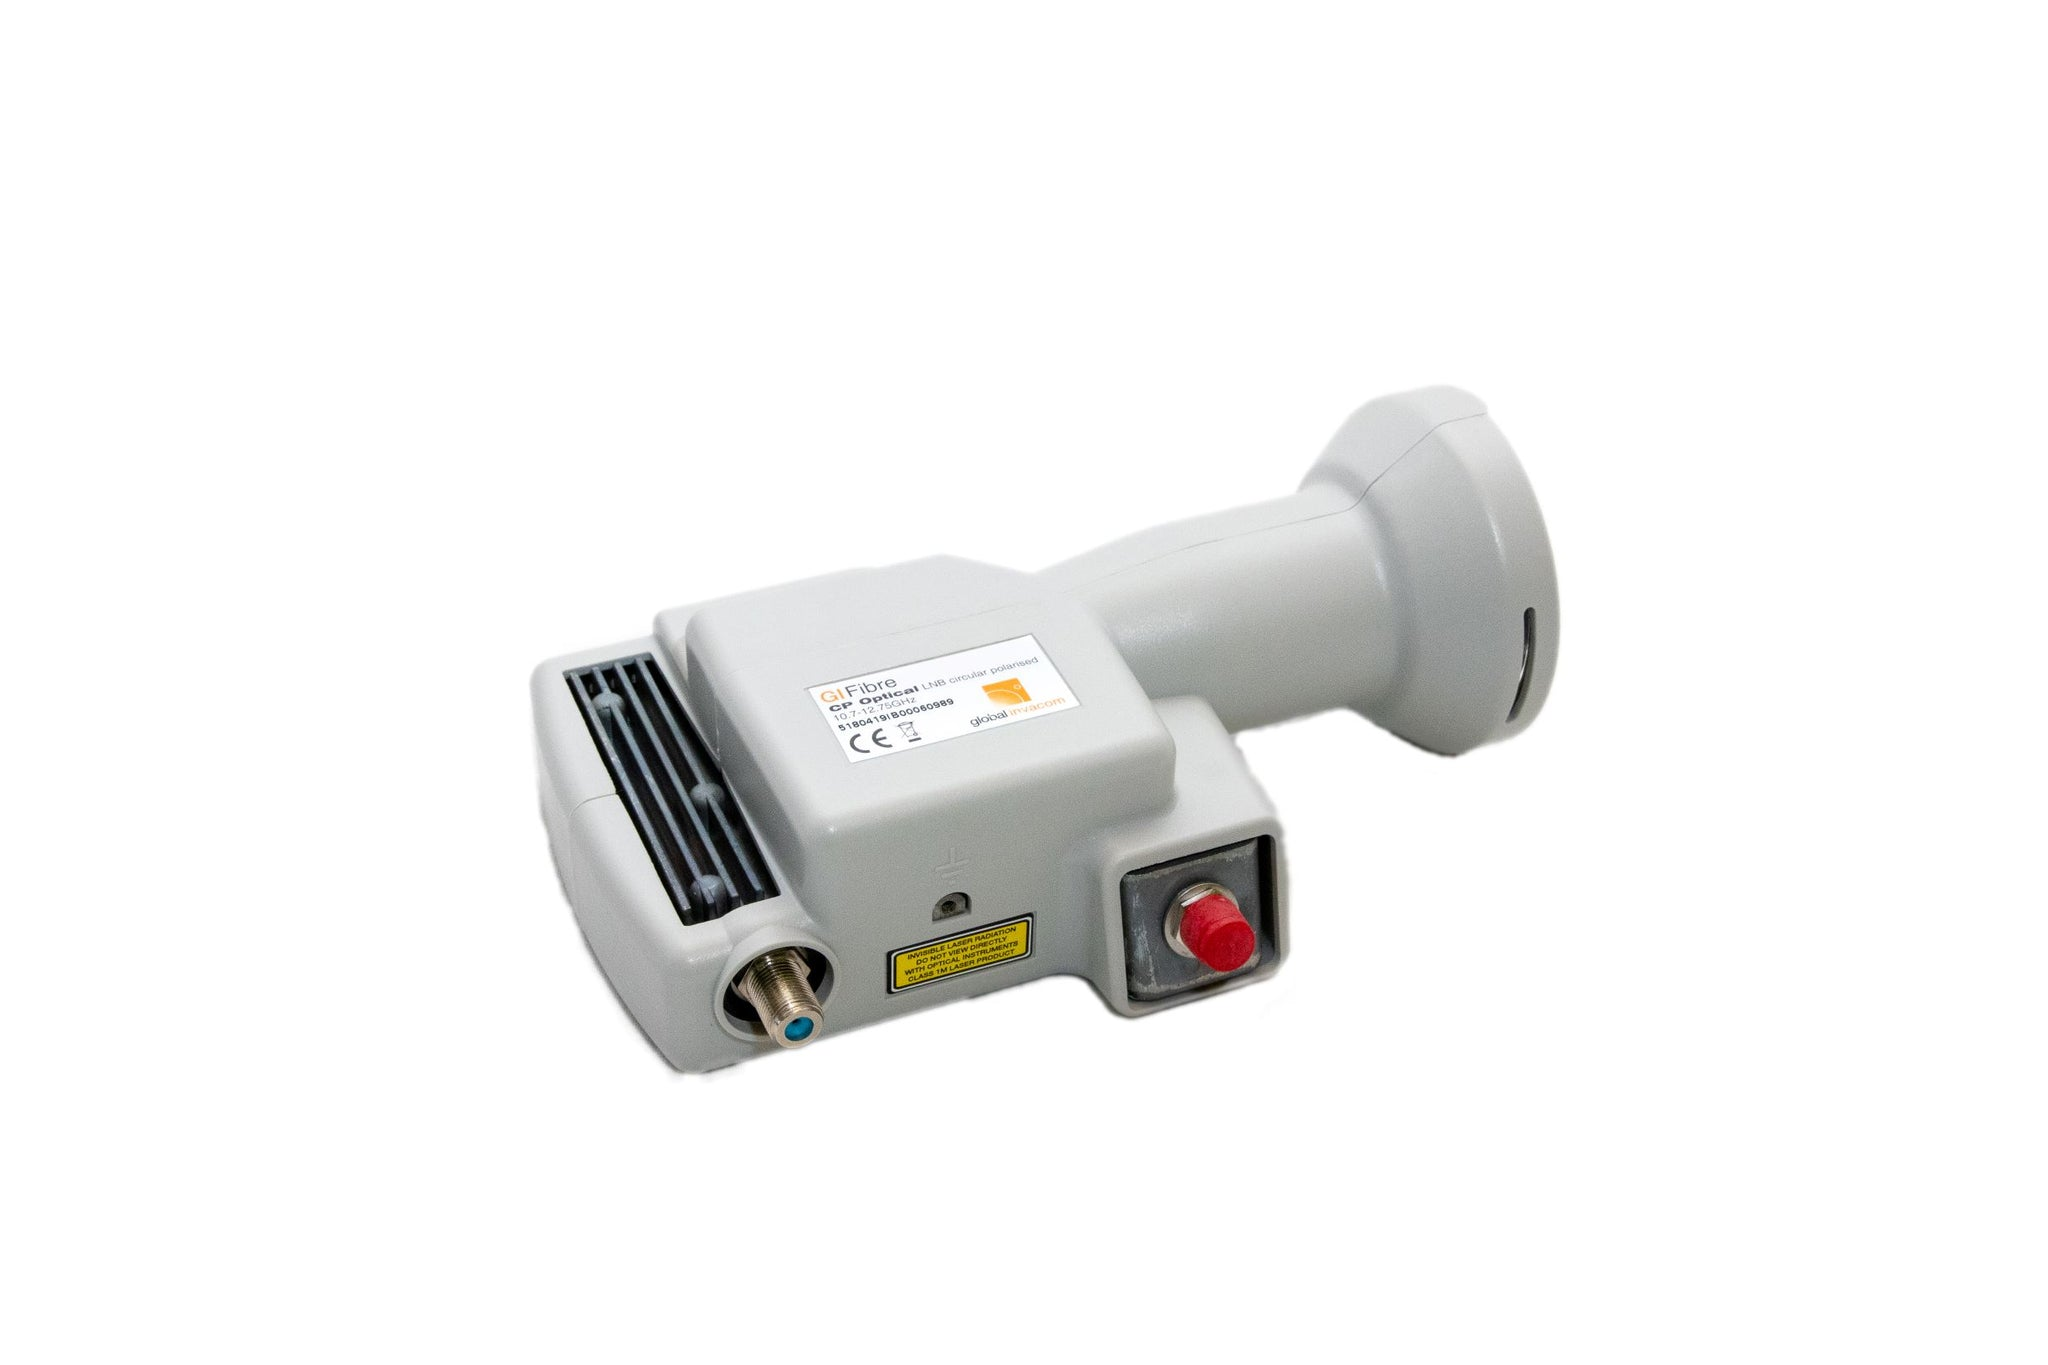 Fibre optical LNB